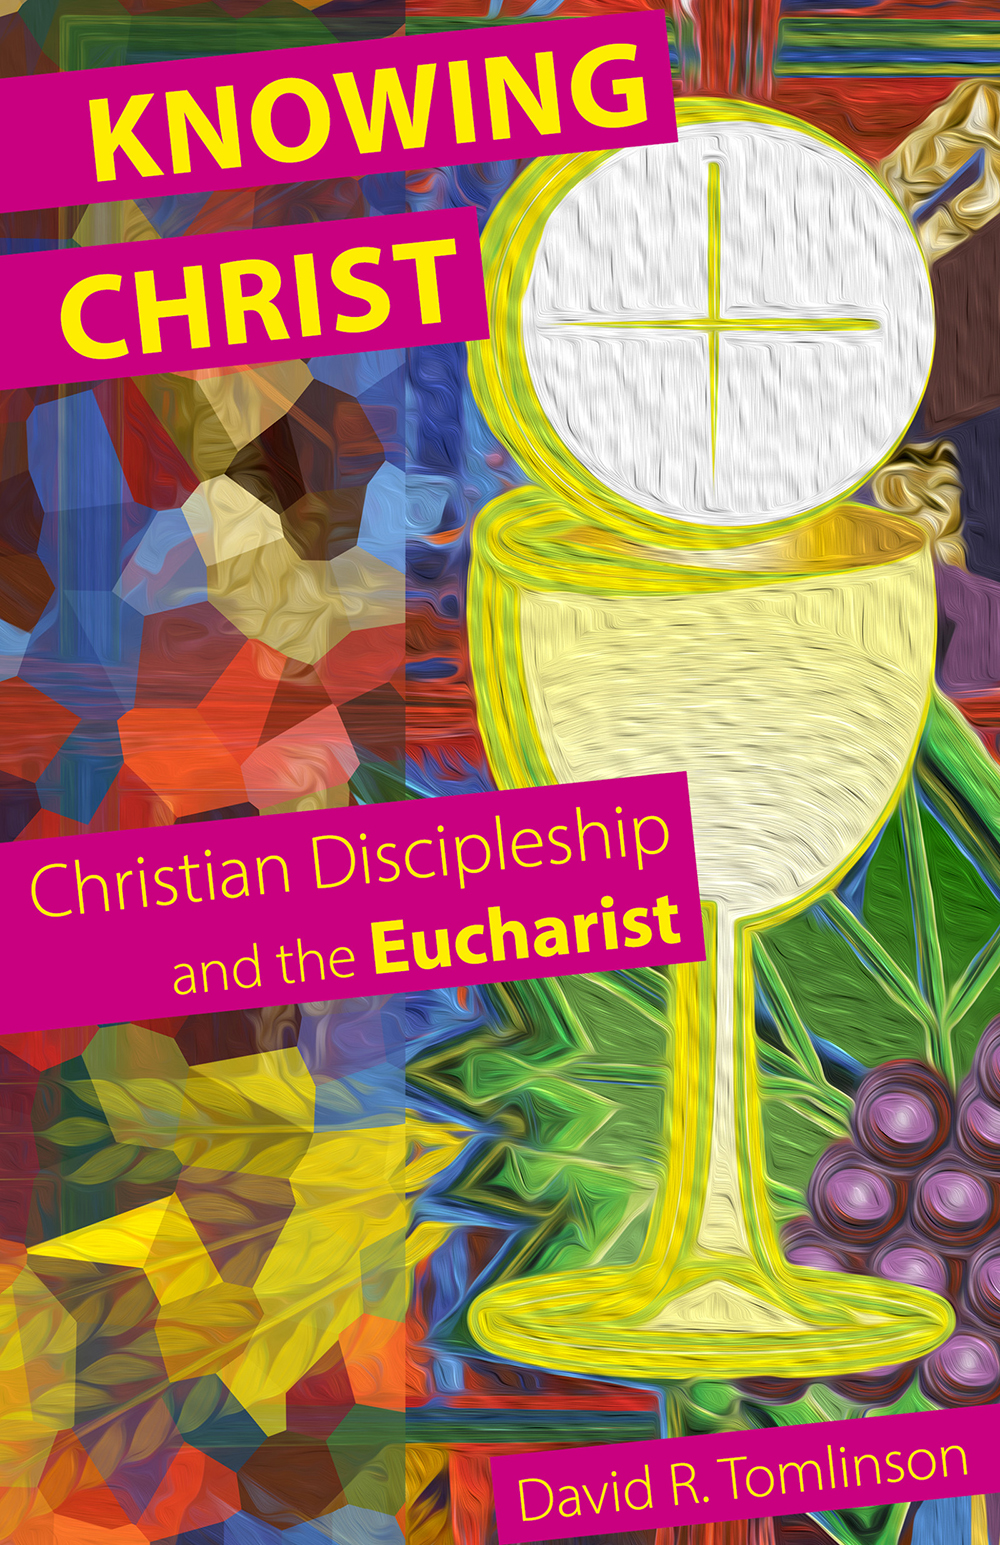 Knowing Christ – Christian Discipleship and the Eucharist